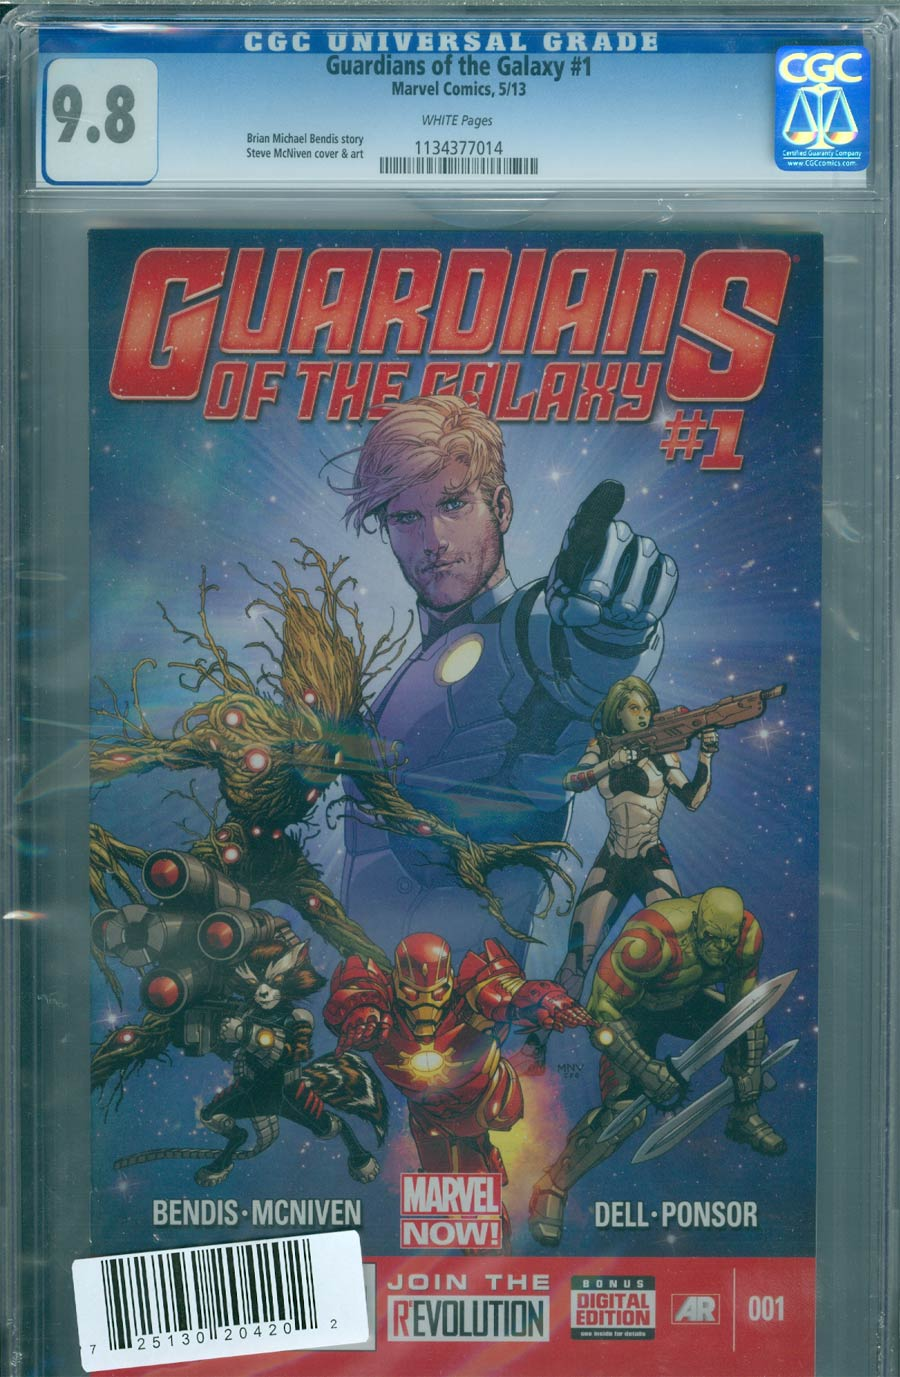 Guardians Of The Galaxy Vol 3 #1 Cover S CGC 9.8